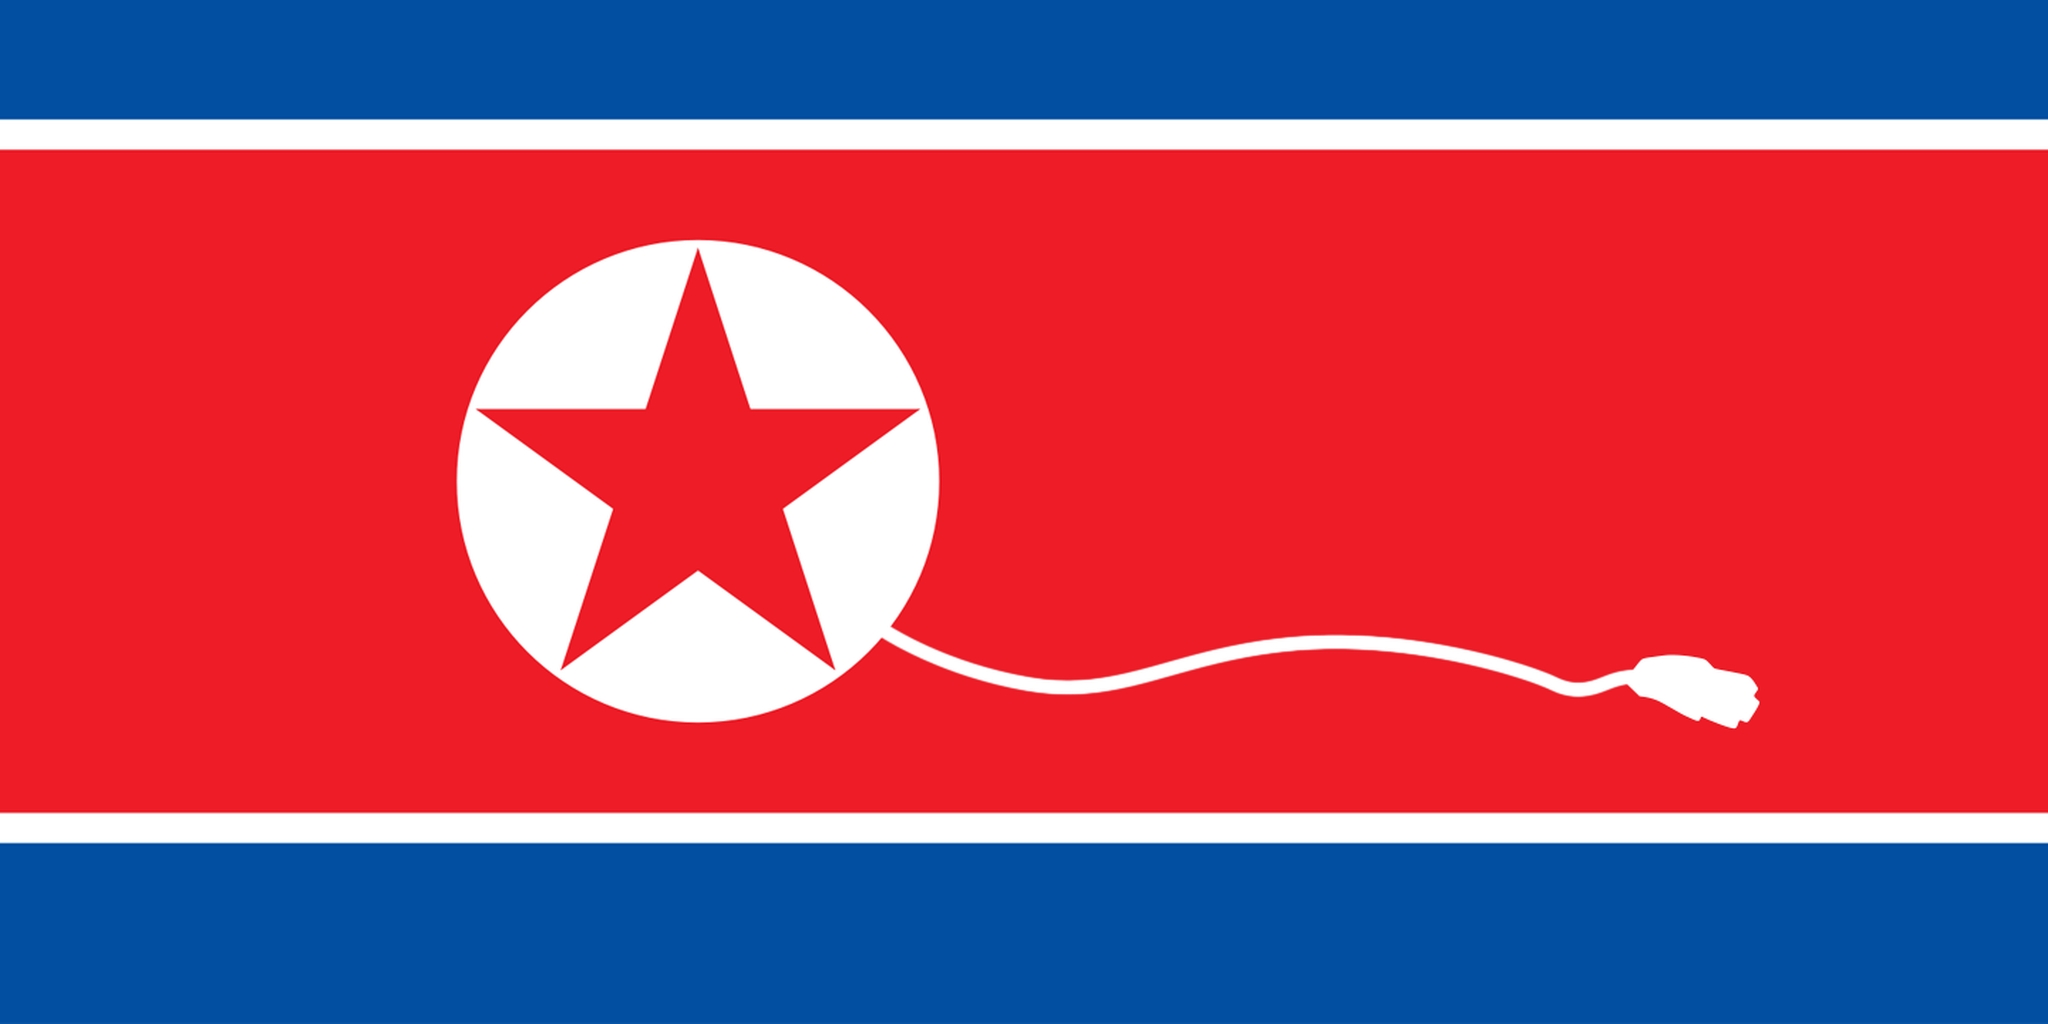 North Korean Flag With Unplugged Internet Cable Coming From Star